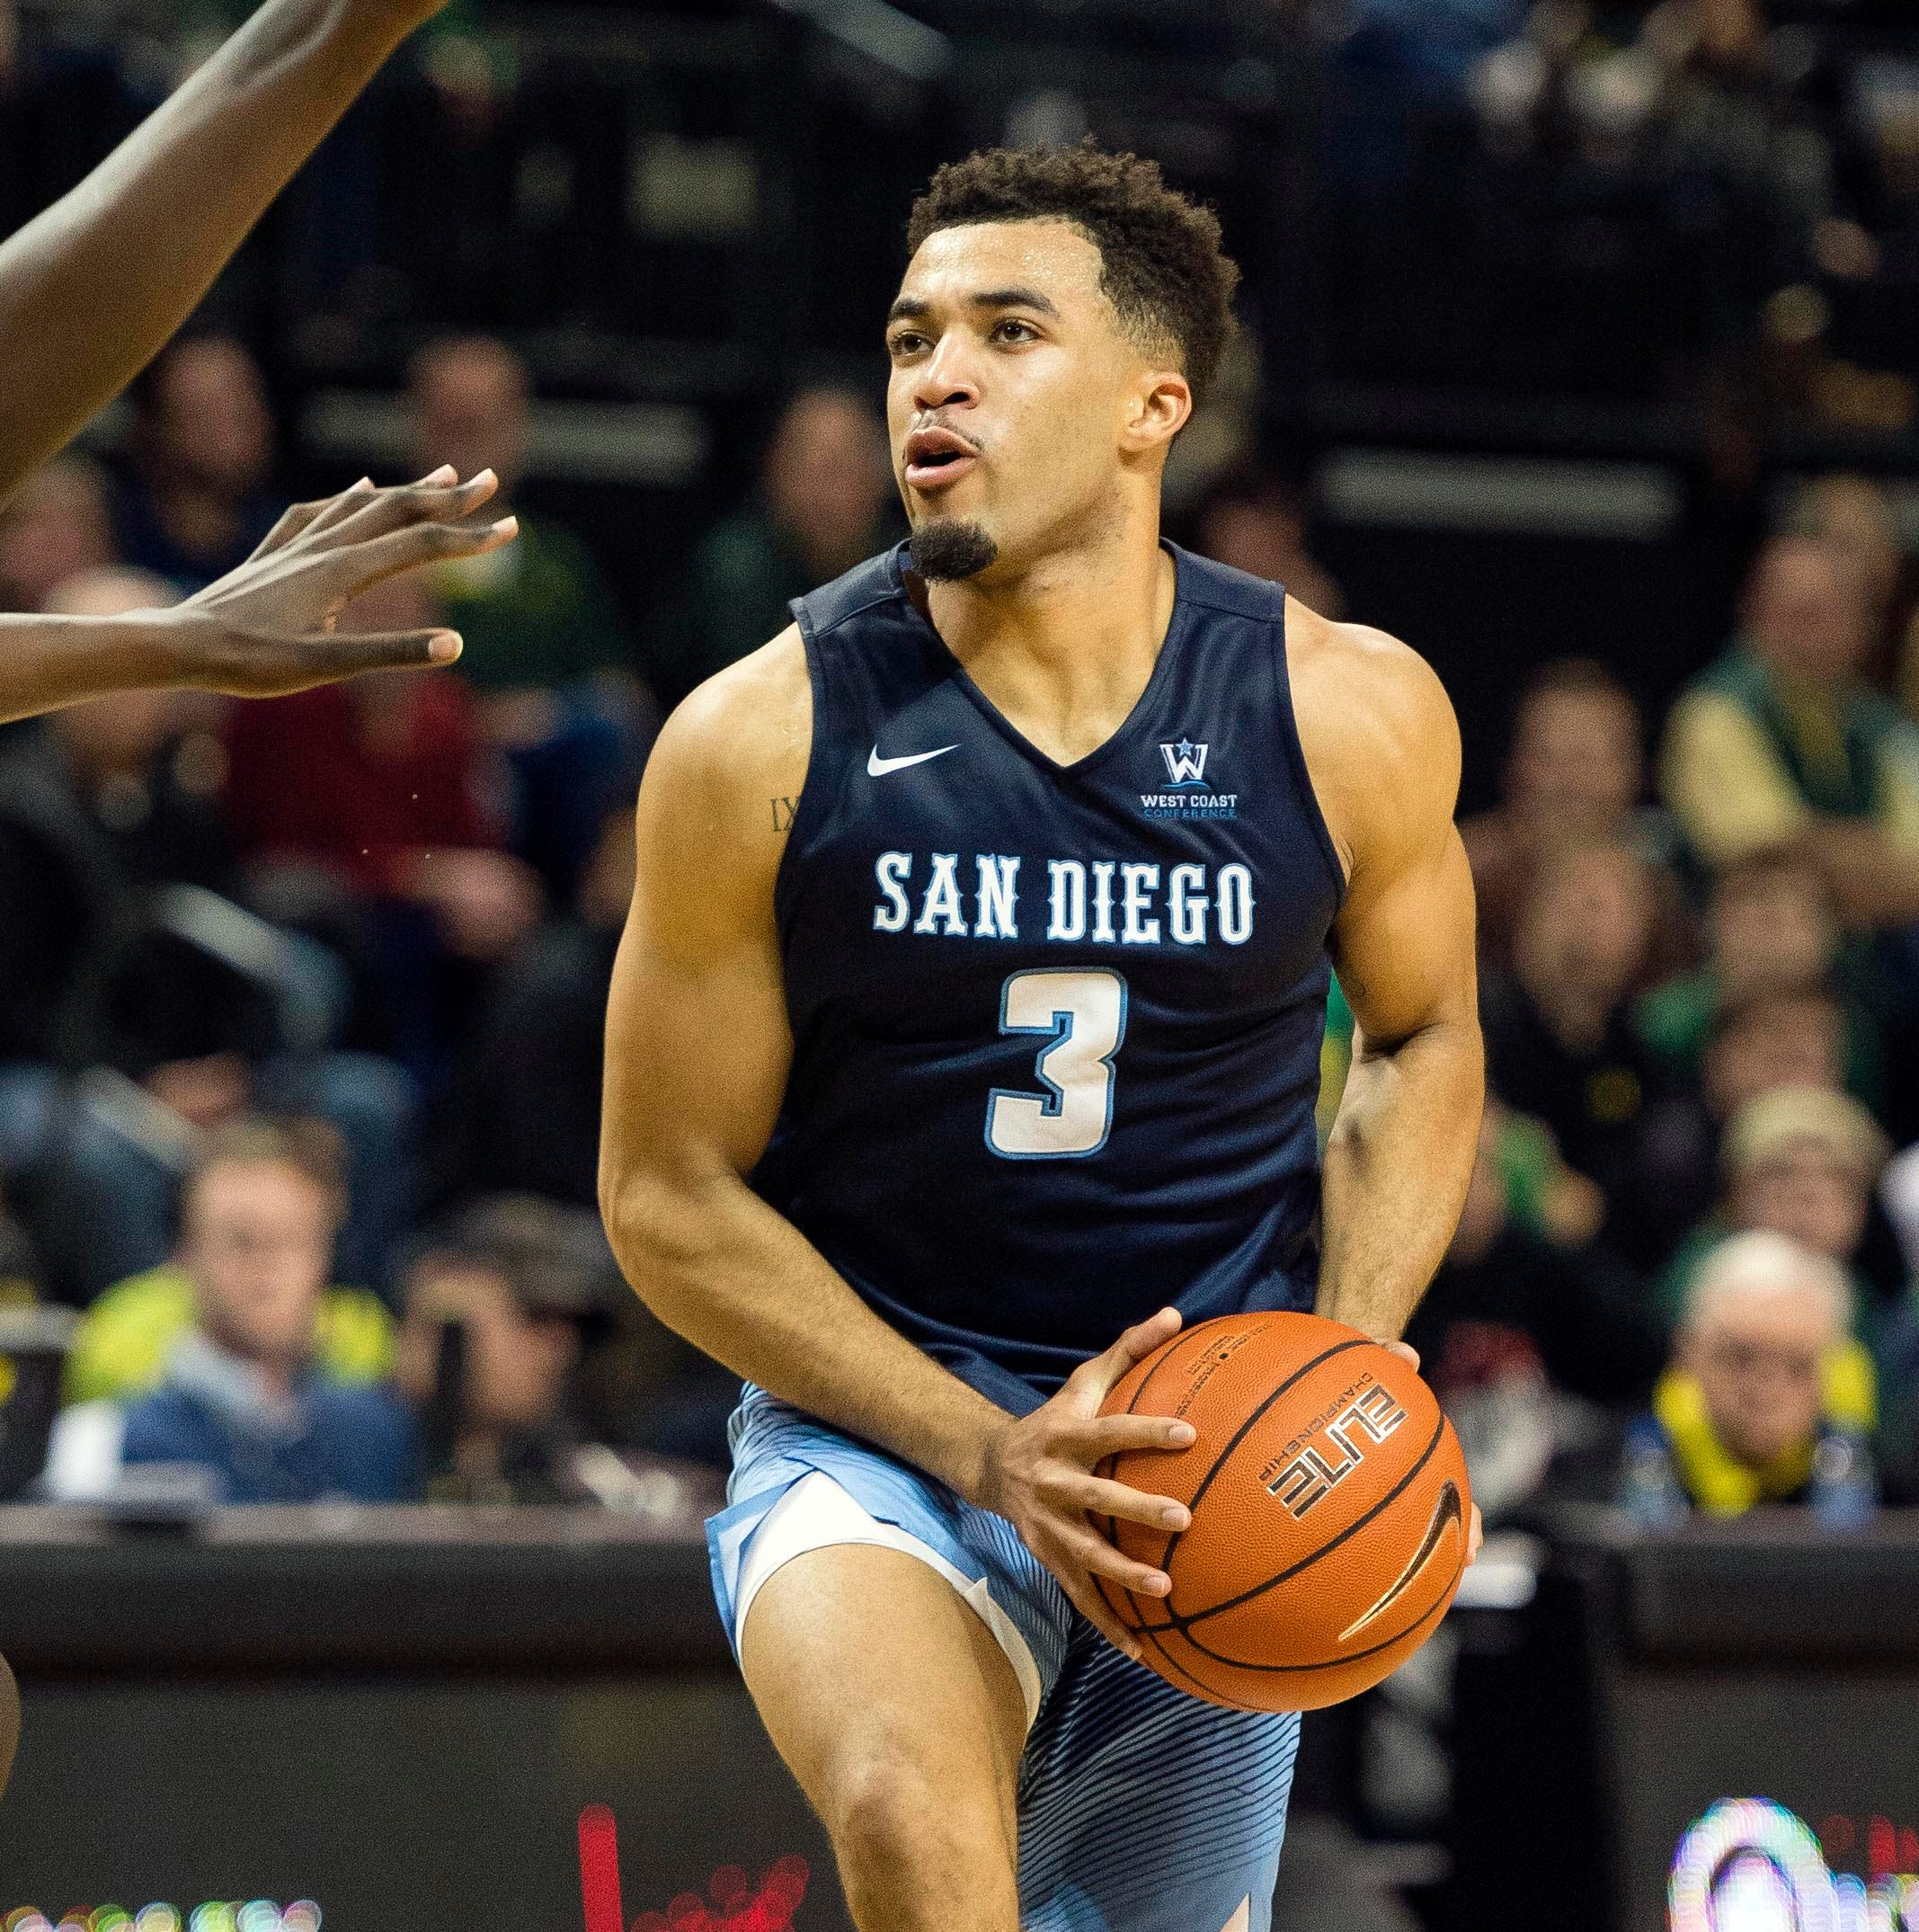 5 things to know about San Diego, Memphis basketball's first NIT opponent